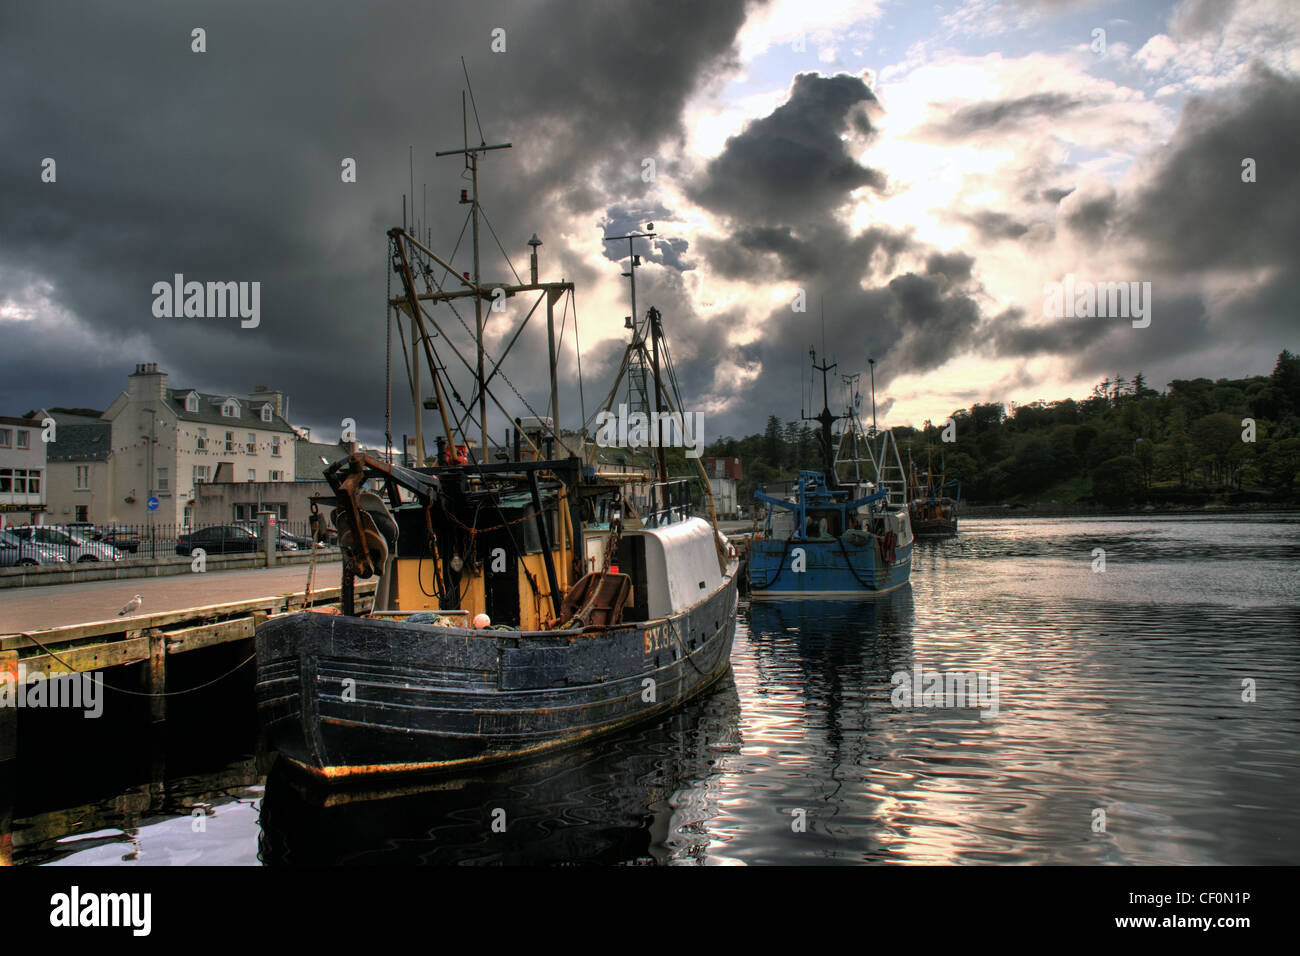 Comhairle,nan,Eilean,Siar,gotonysmith,Traditional,fishing,boats,dramatic,sky,in,Stornoway,harbour,Western,Isles,Scotland,United,Kingdom,UK,GB,great,Britain,castle,bay,CNES,Outer,Hebrides,Viking,Harbour,maritime,industry,sailors,sailor,gotonysmith,EU,Fishing,quota,Brexit,freedom,British,waters,territory,territorial,rights,borders,border,sovereignty,Steòrnabhagh,Na h-Eileanan Siar,Western Isles,Leòdhas,Eilean,CNES,Alba,Buy Pictures of,Buy Images Of,territorial waters,Eilean Leòdhais,Stornoway town